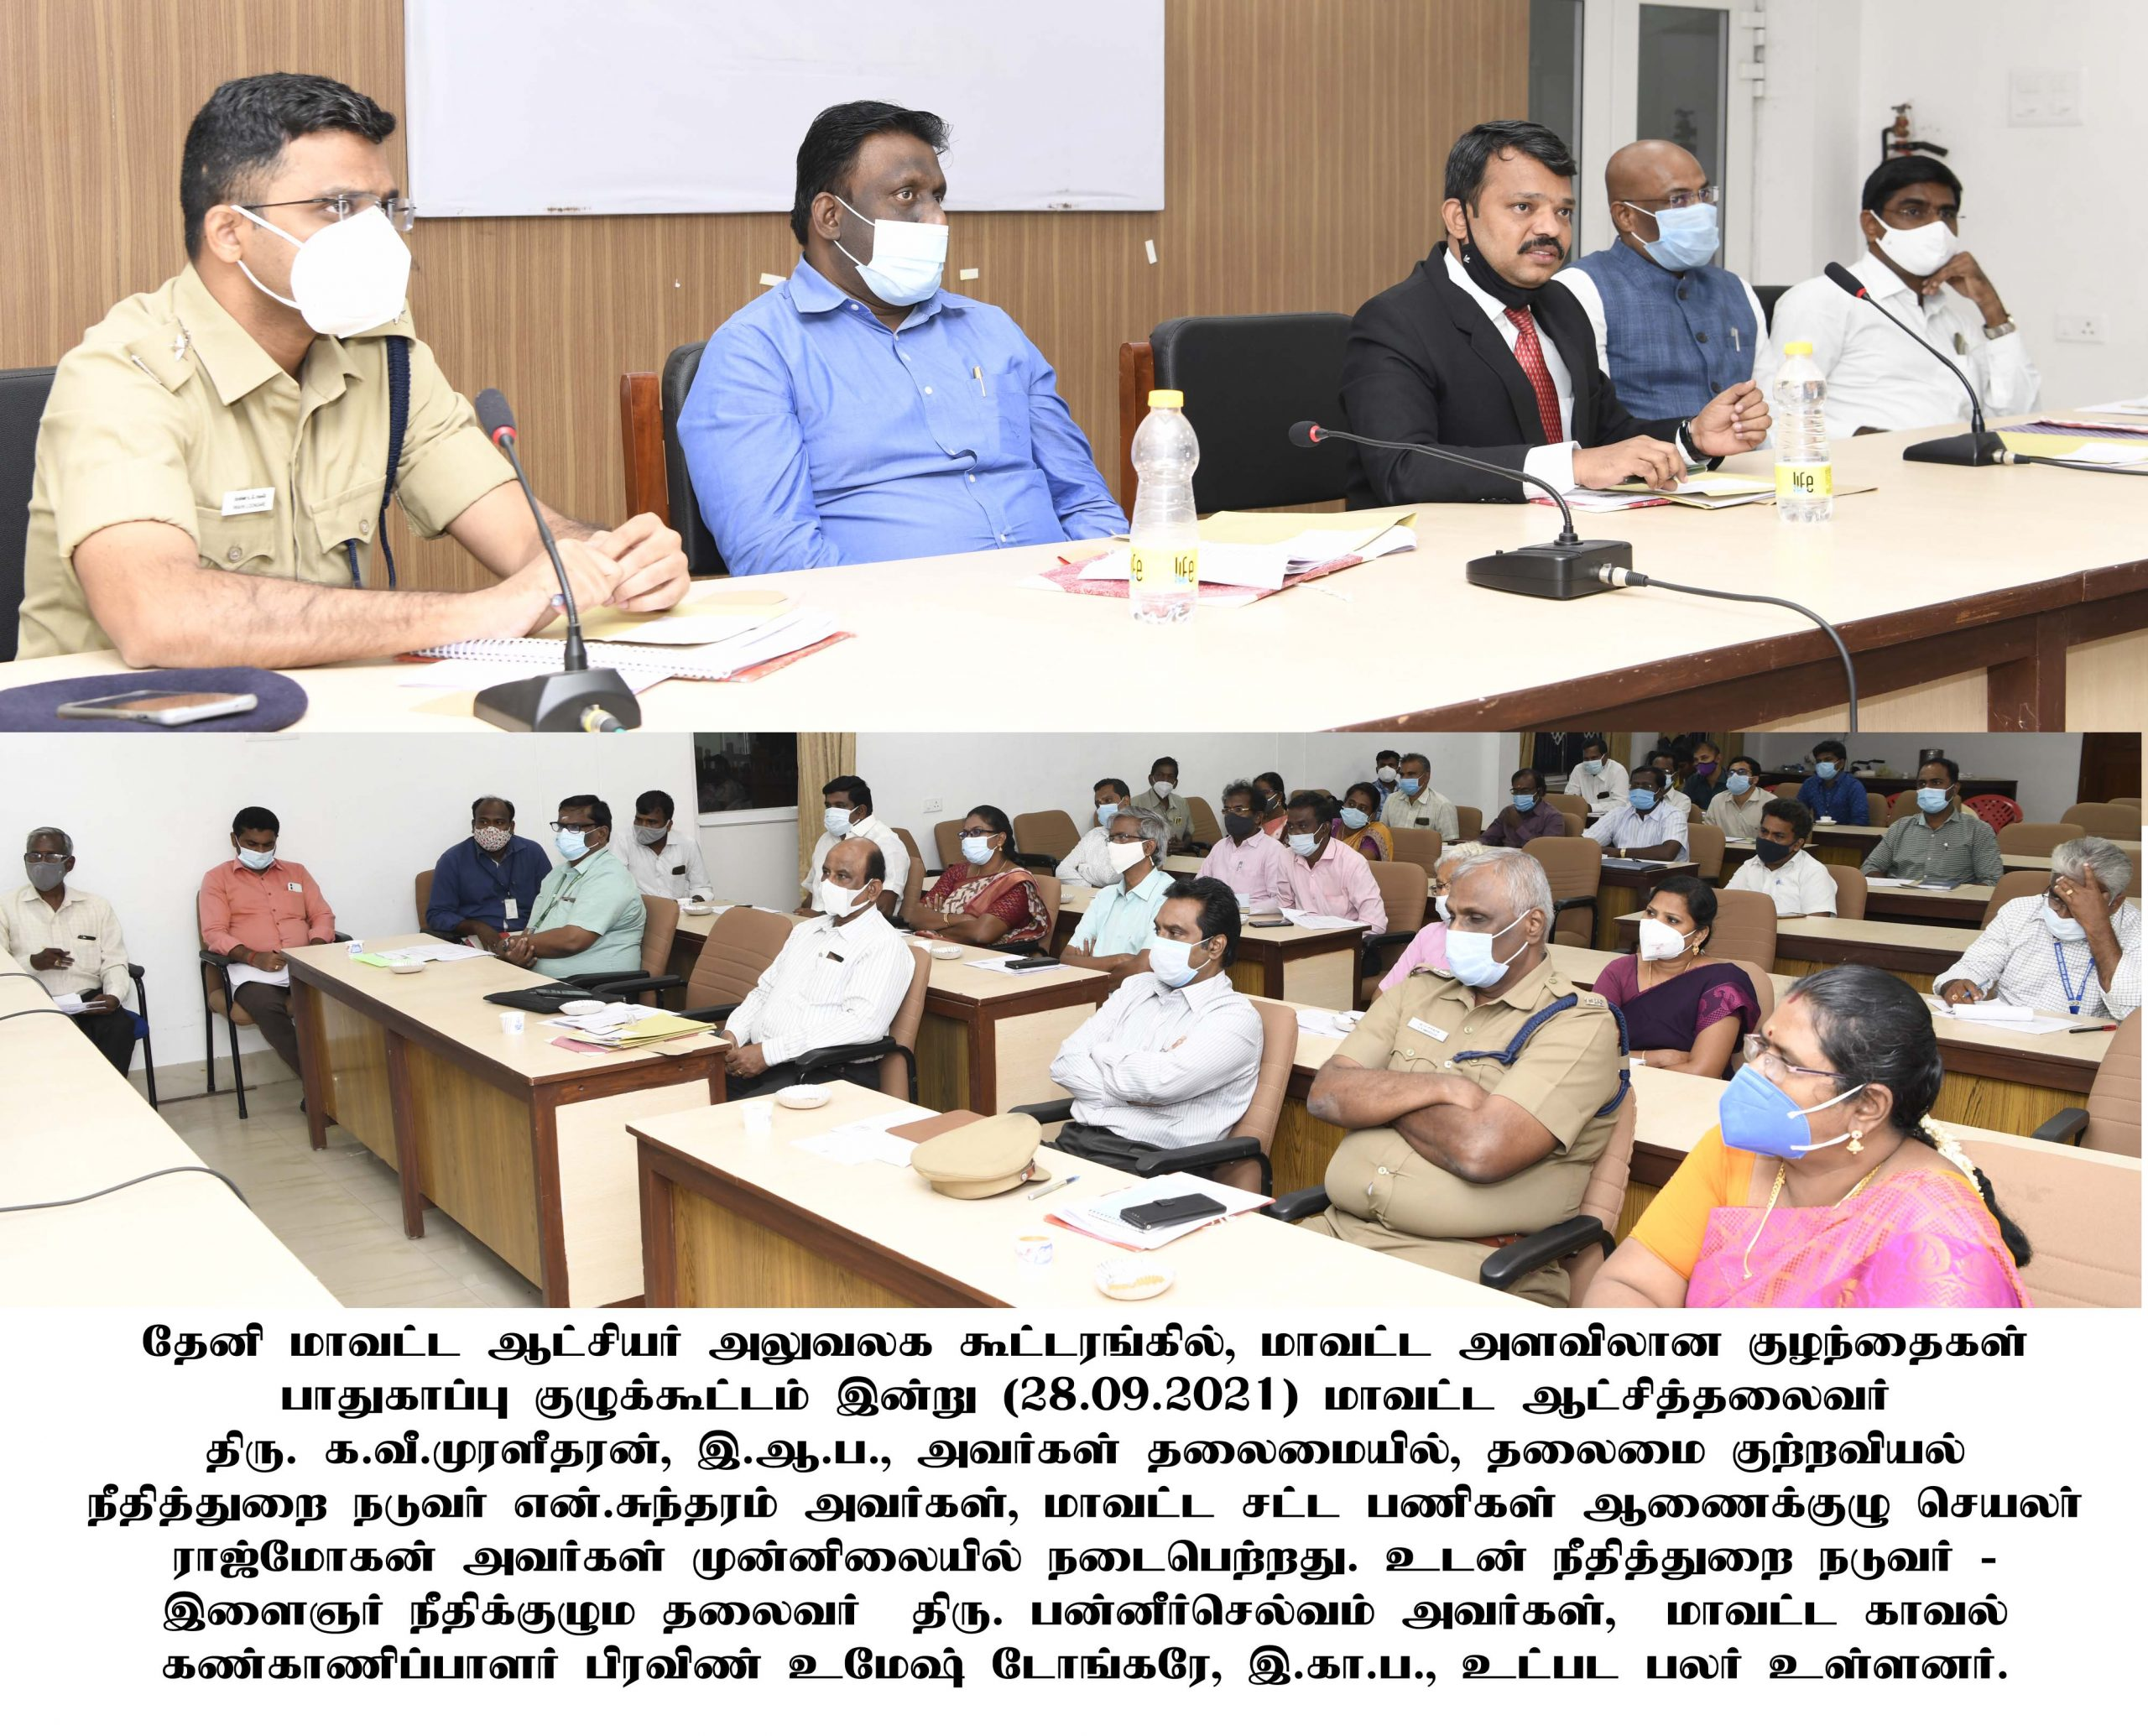 Child protection meeting